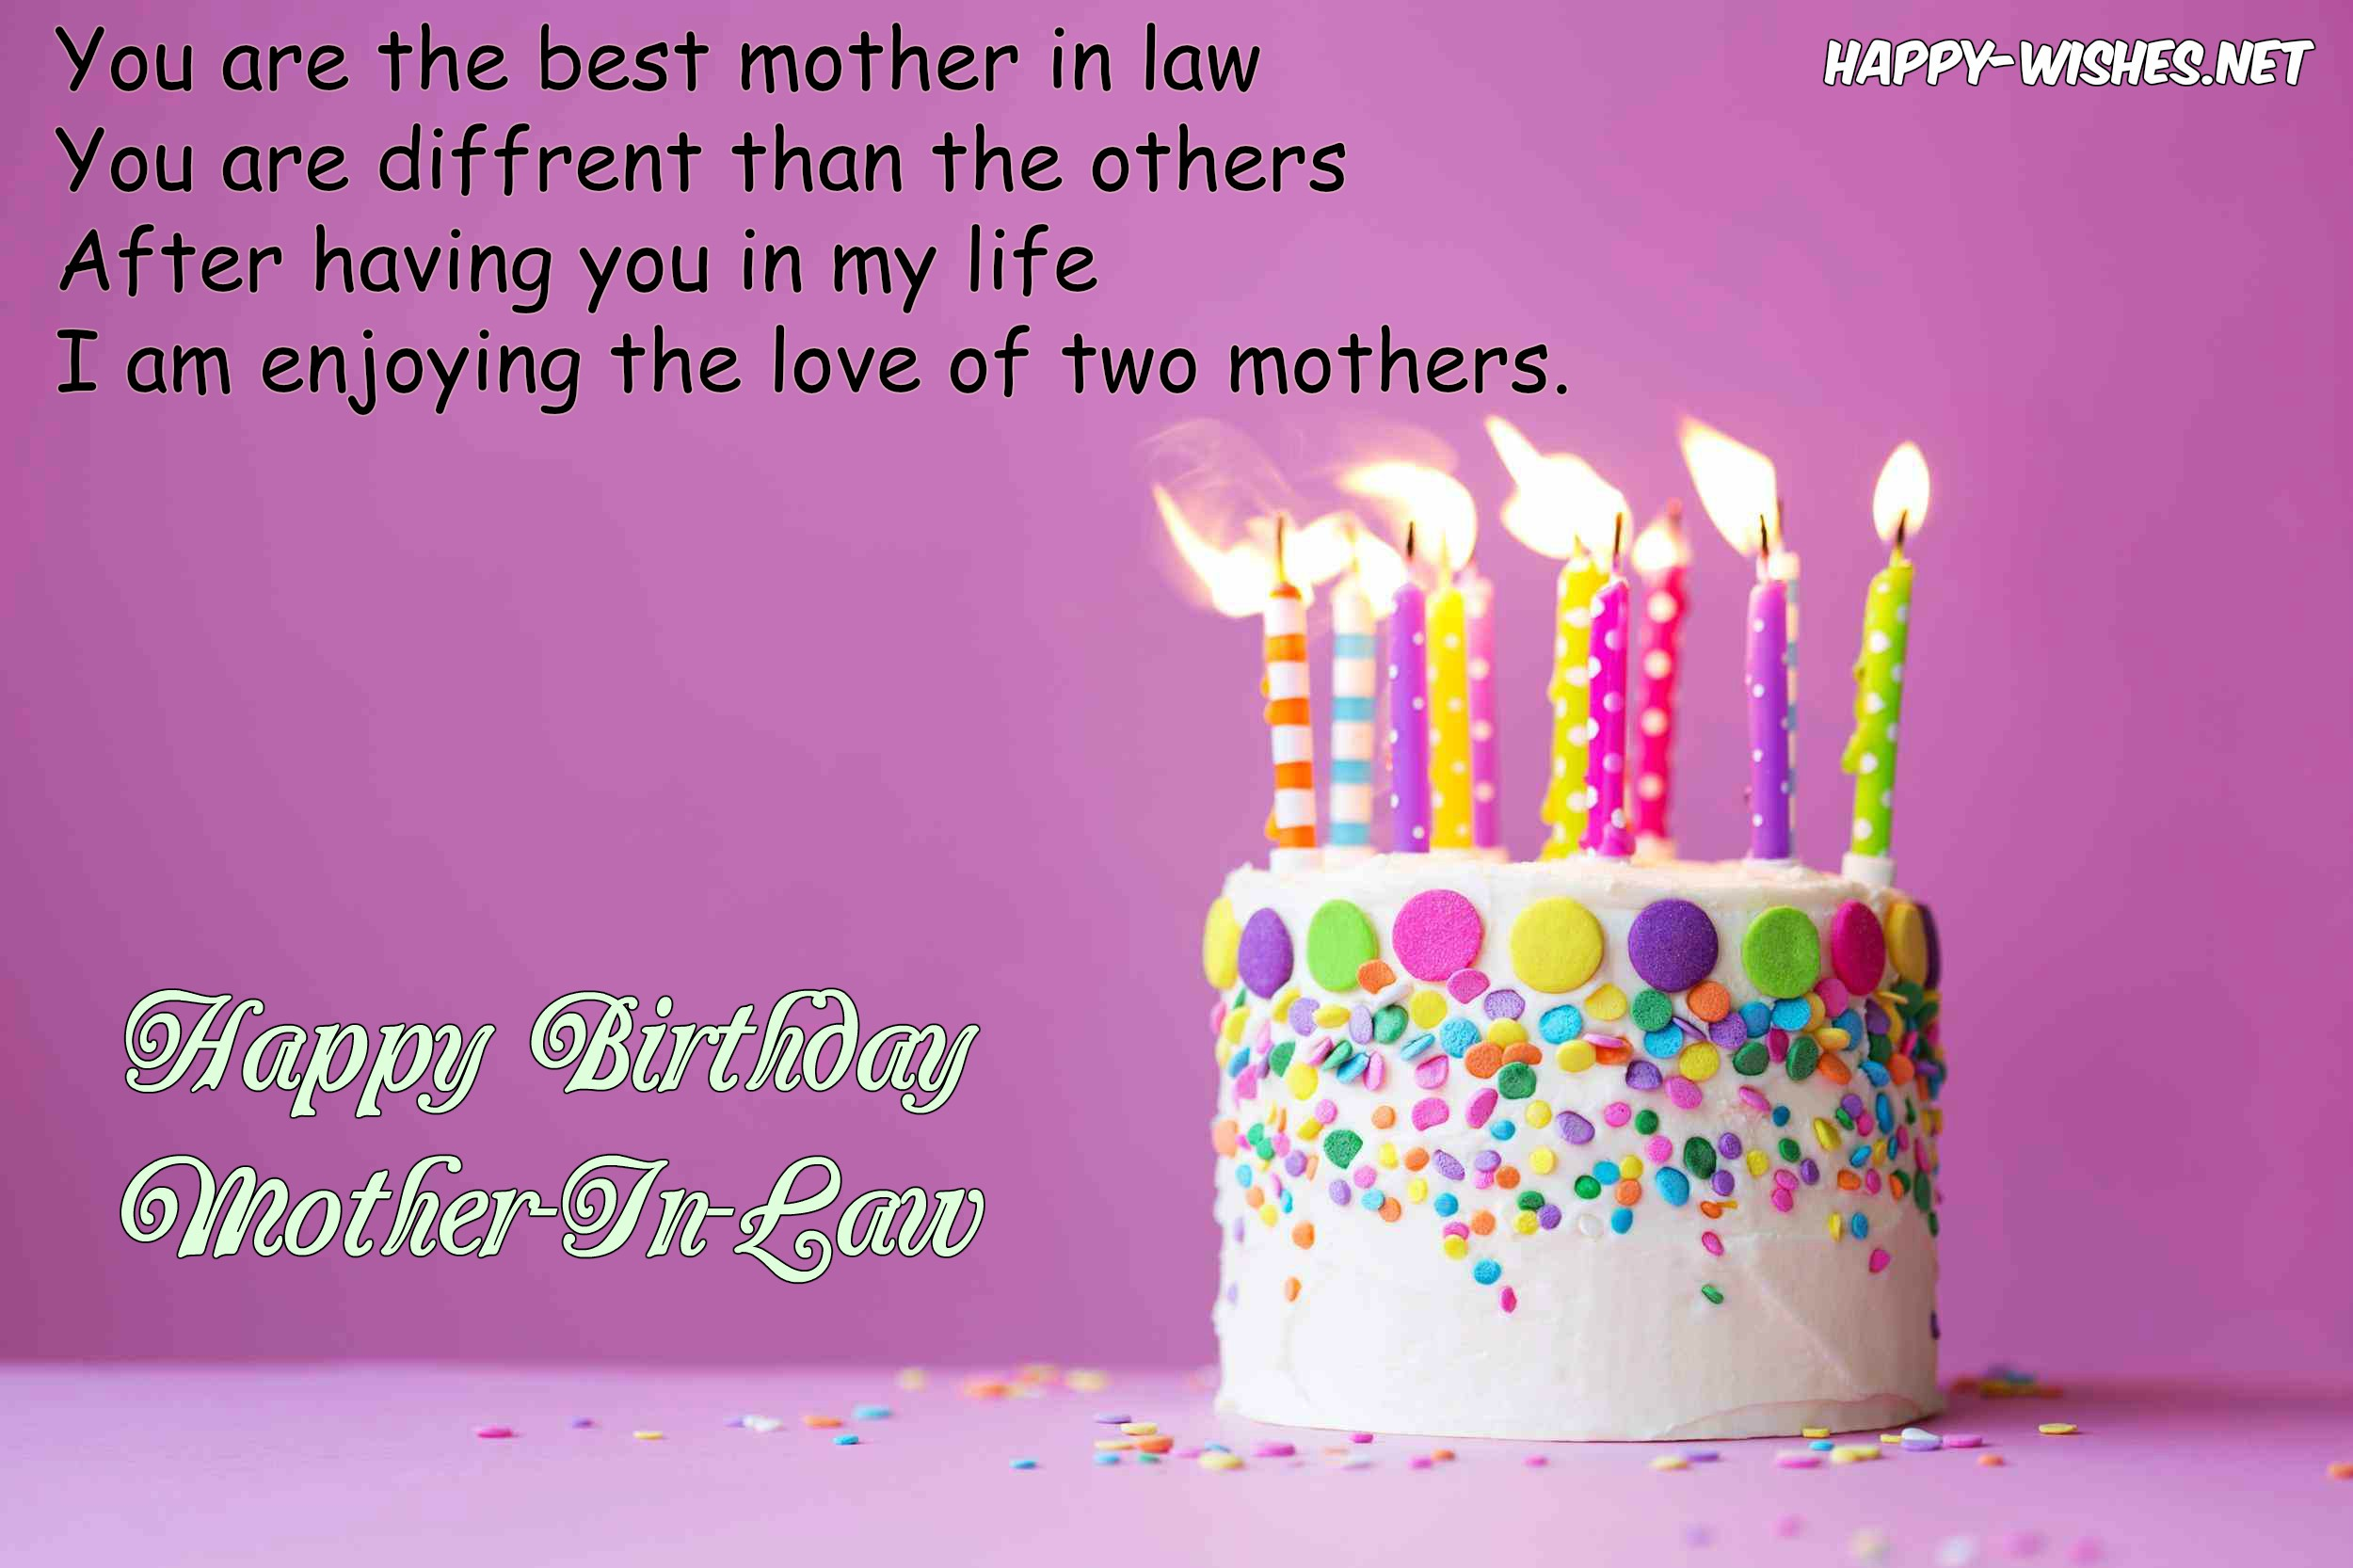 happy birthday mother in law meme ; 8HappyBirthdaywishesformother-in-law-compressed